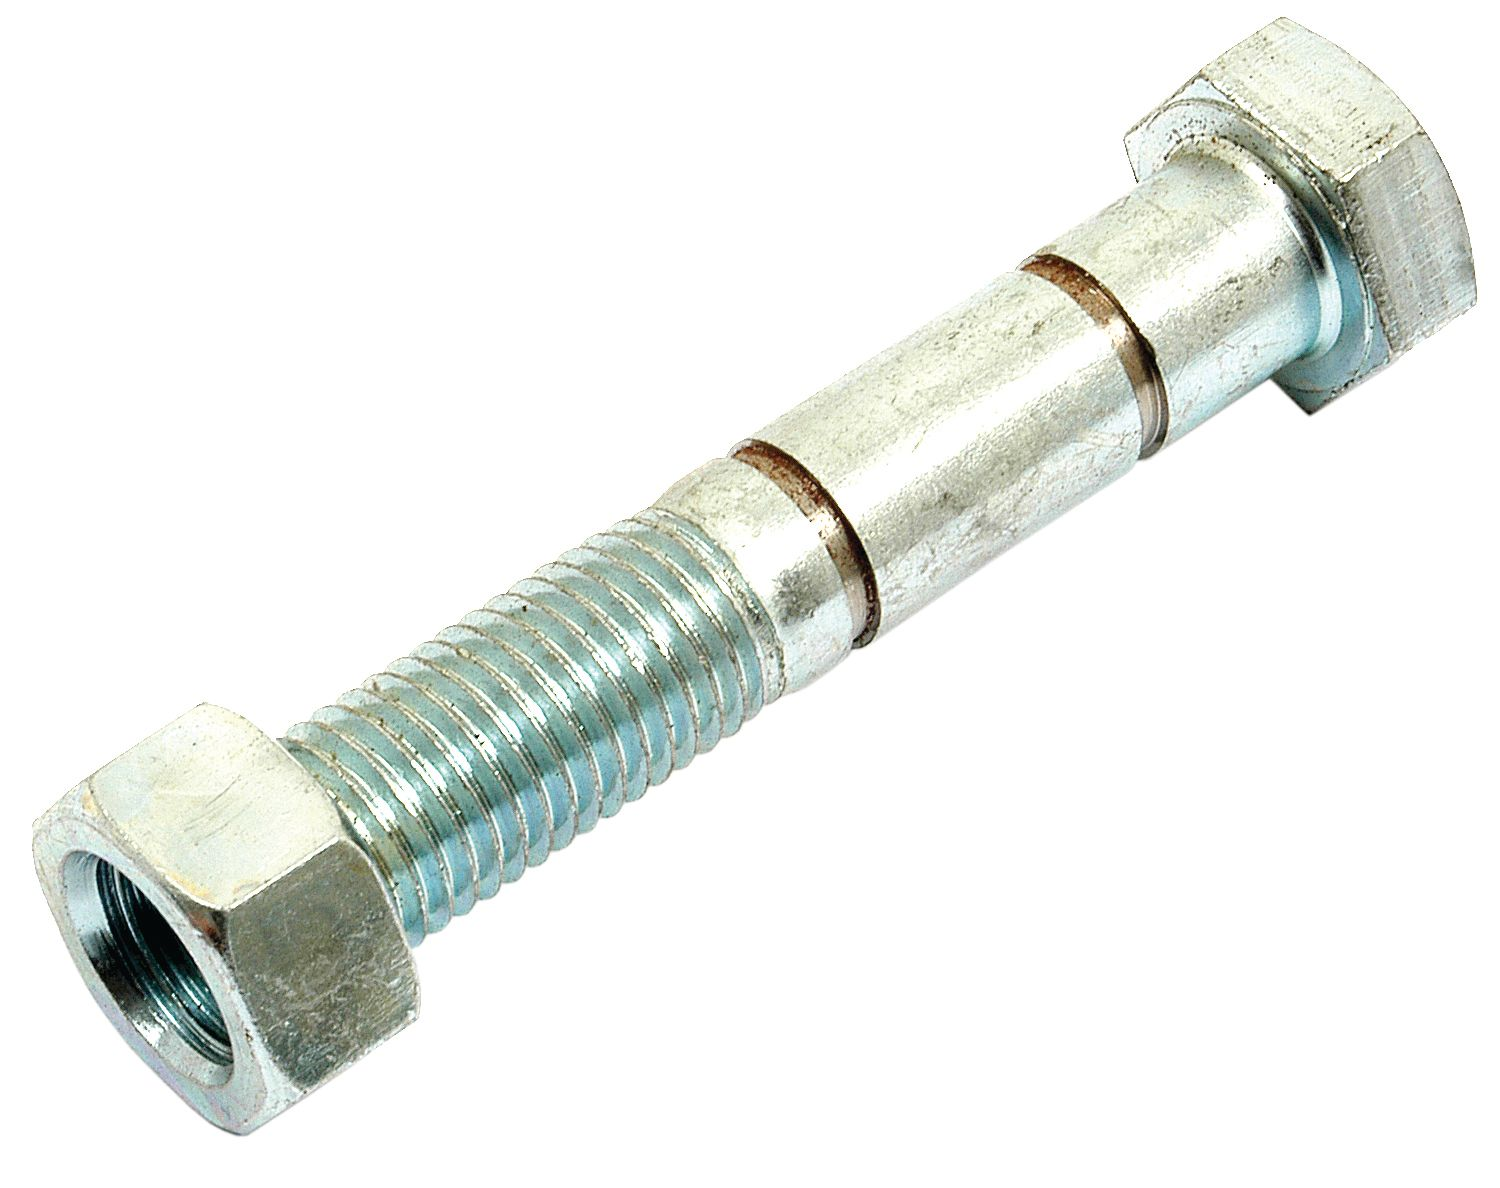 COUSINS SHEAR BOLT-M20X110MM 22851